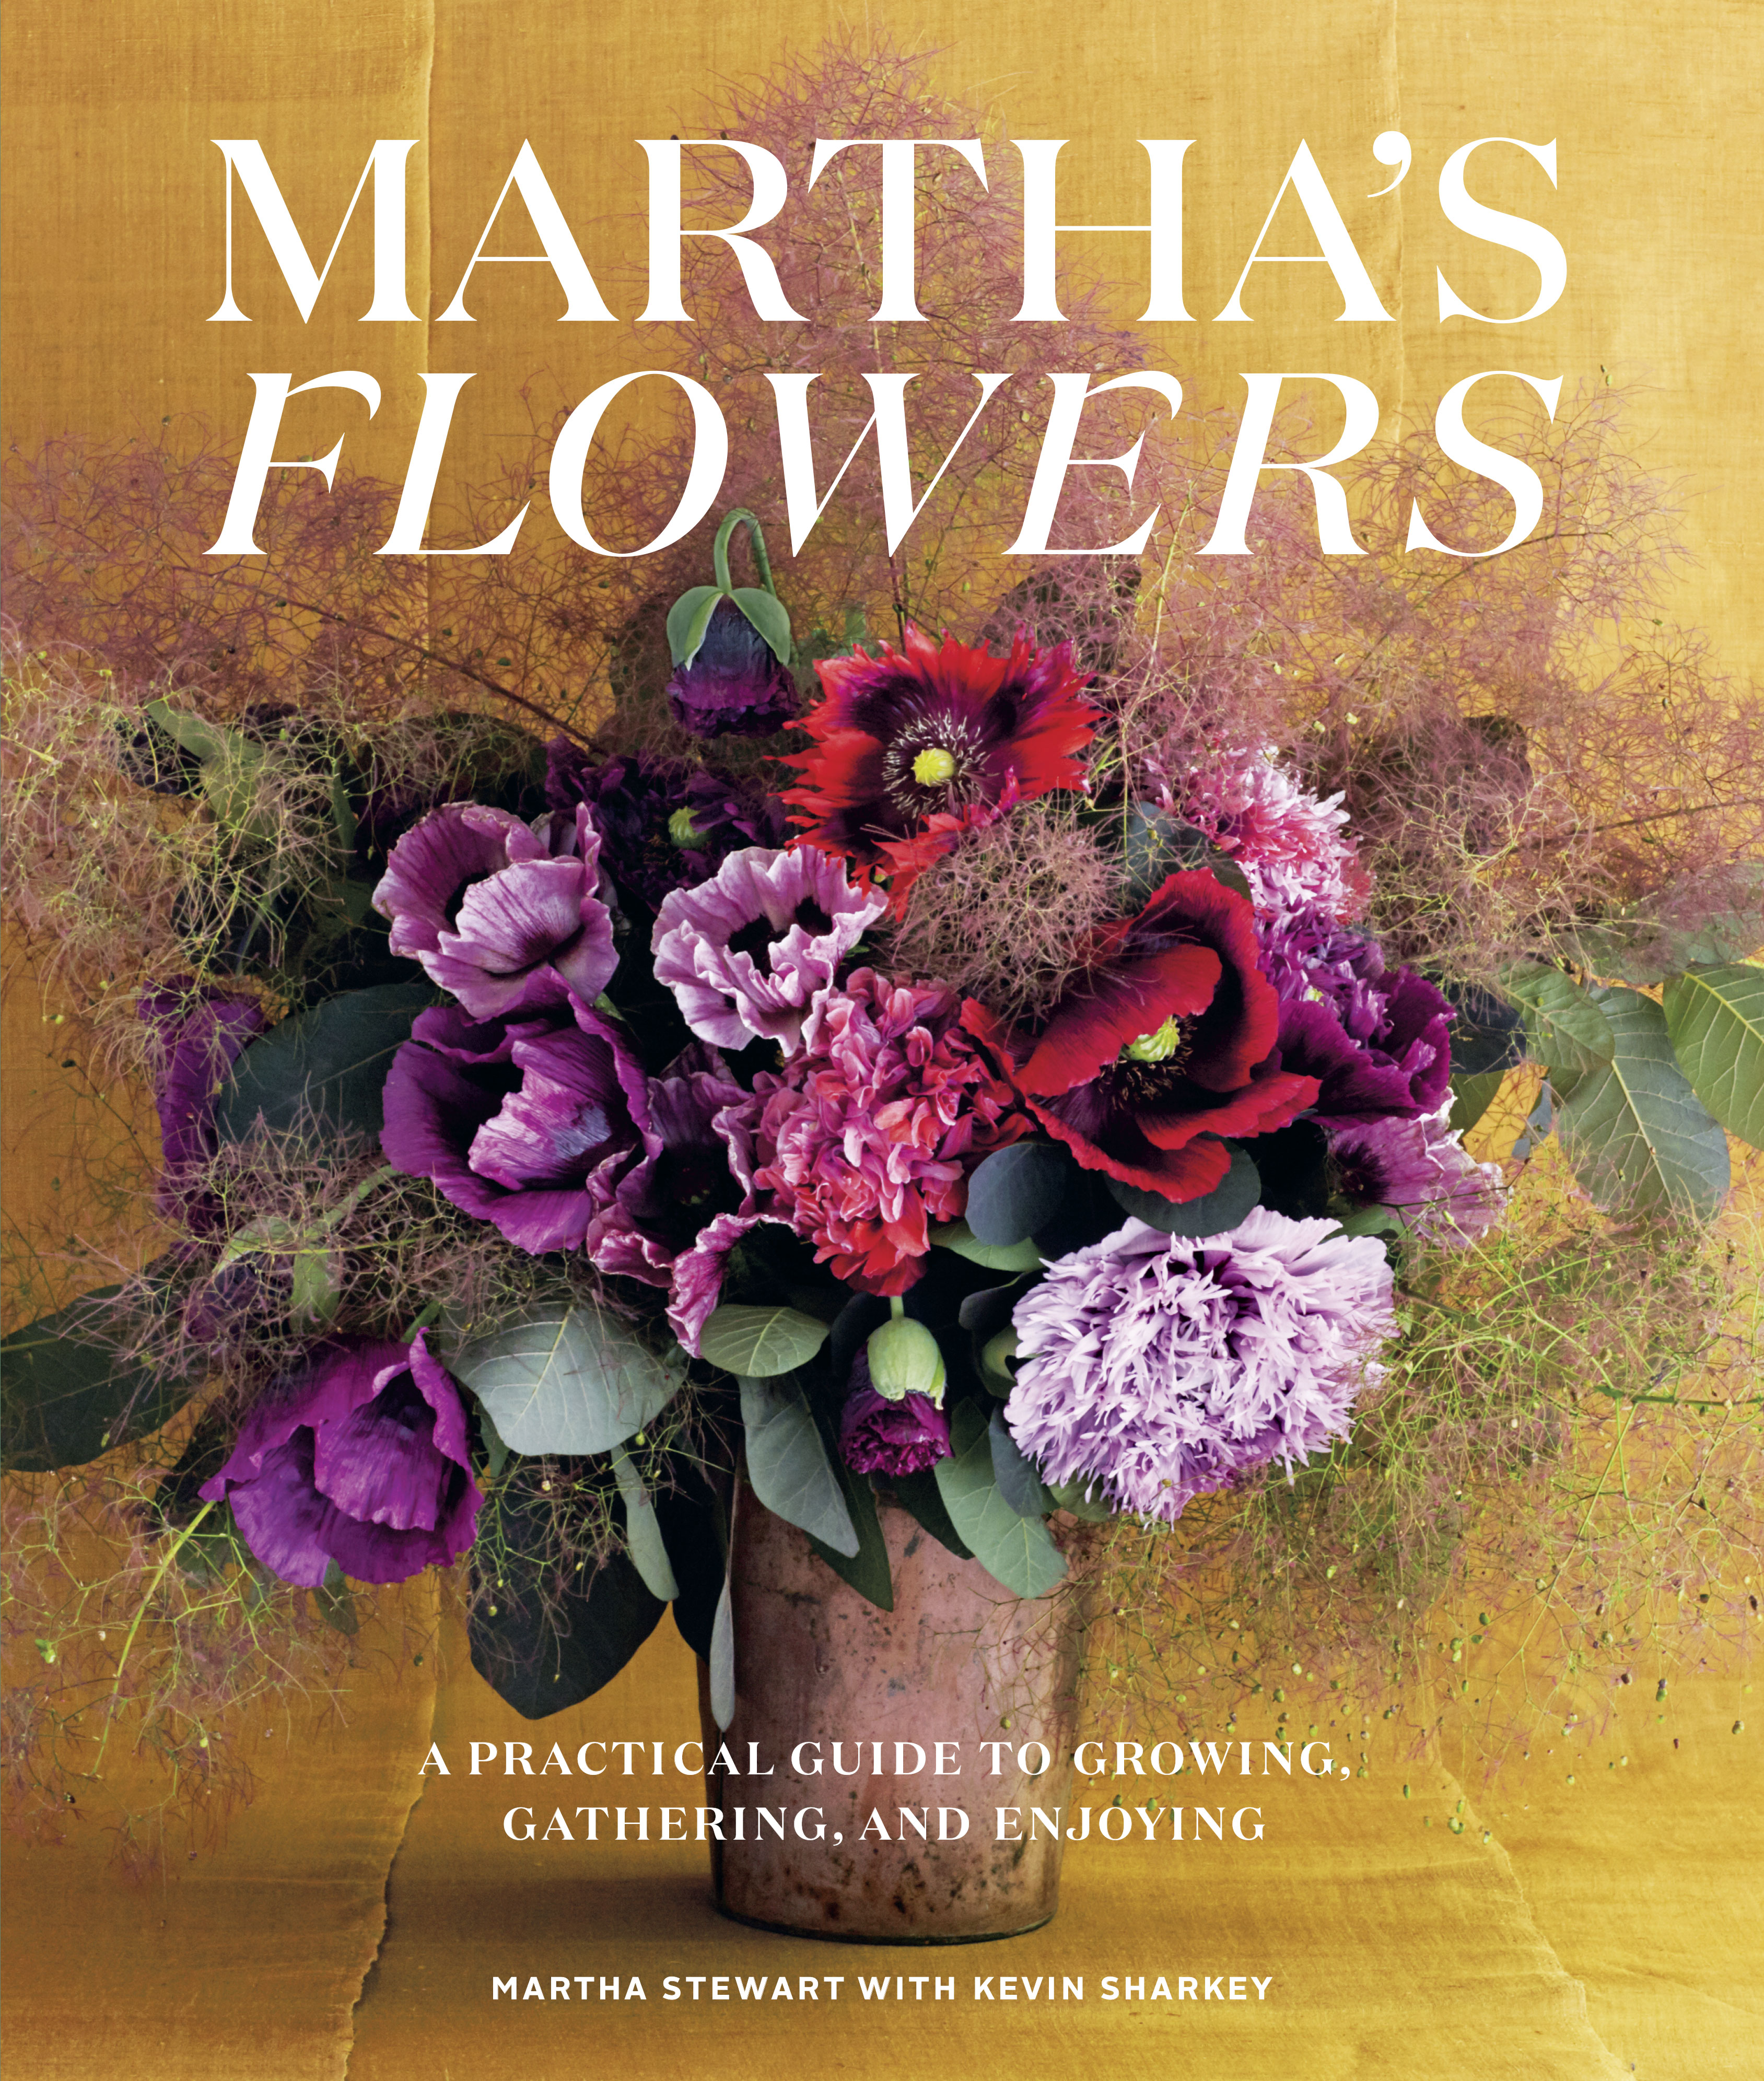 martha's flowers book deluxe edition